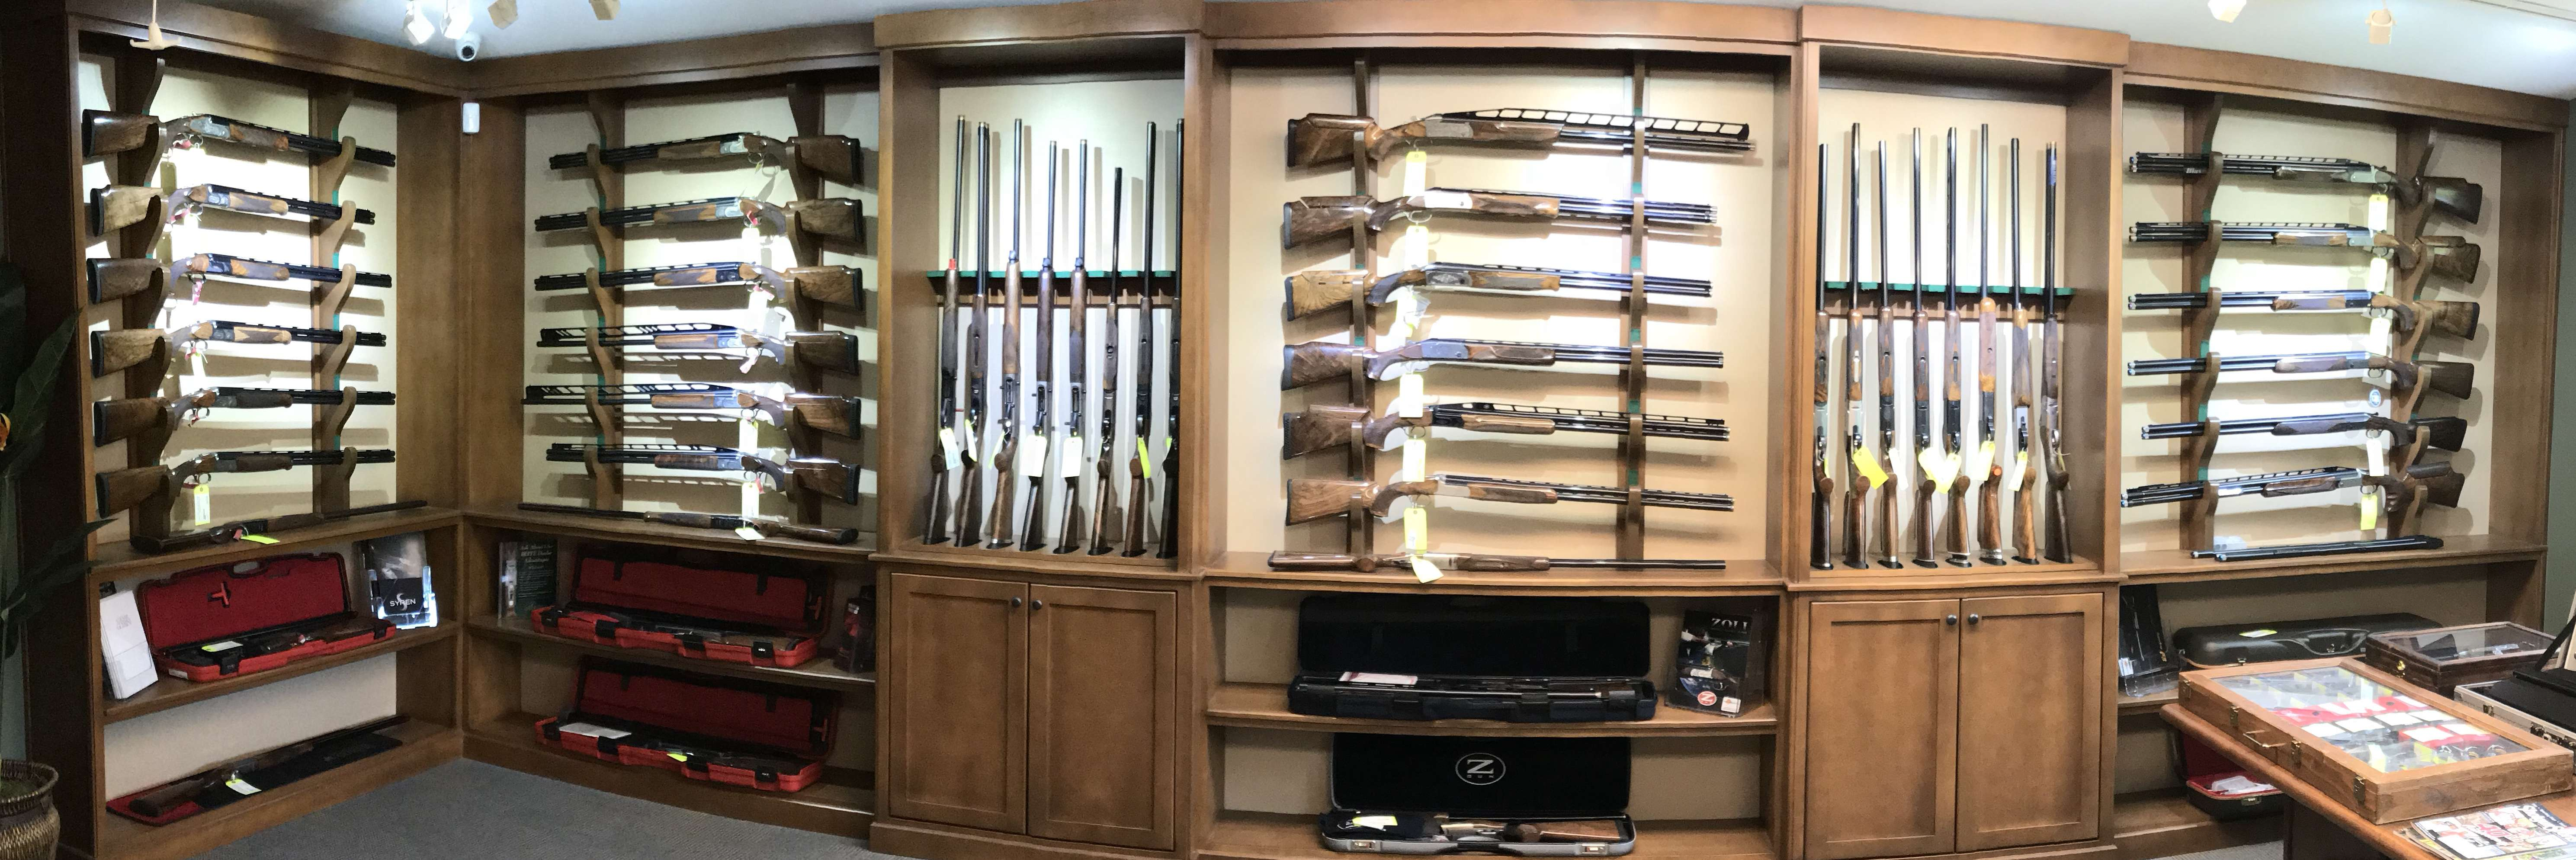 Target Shotguns, Inc  | Firearms and Gear for sale